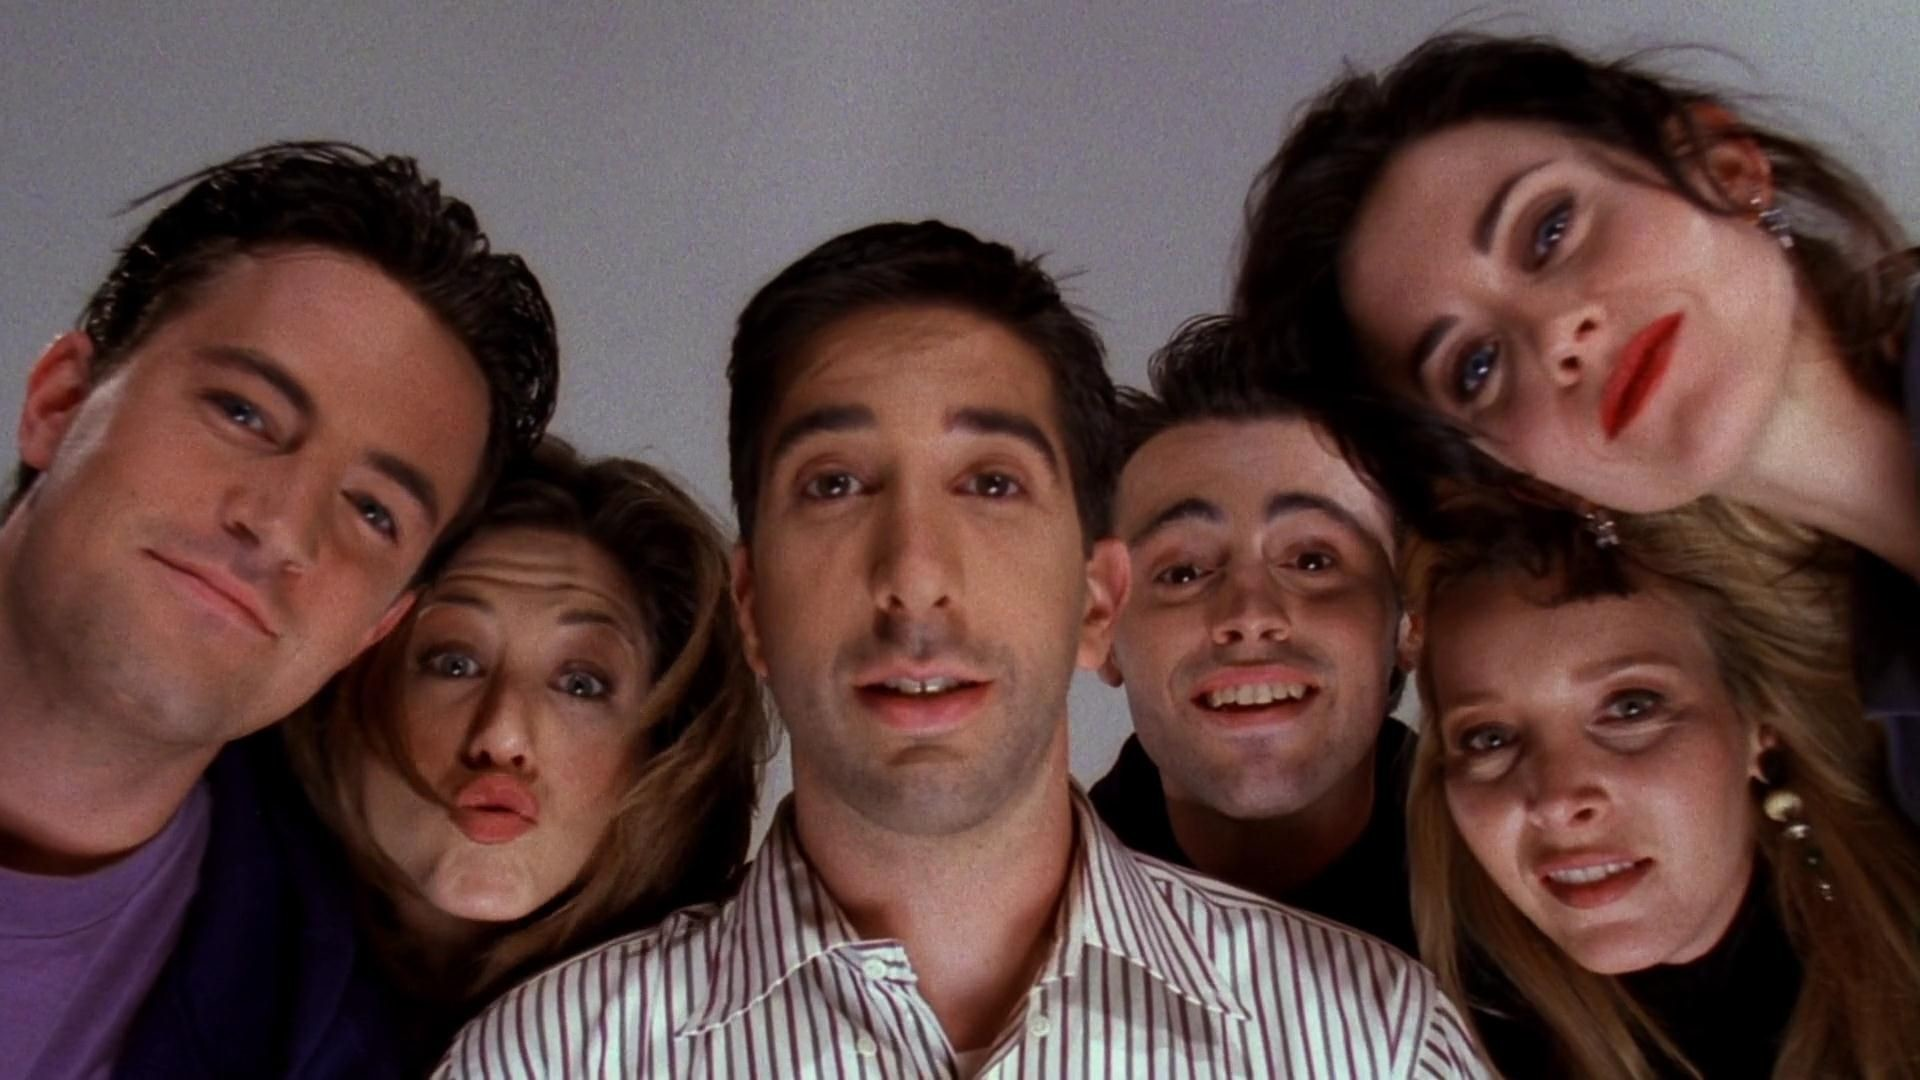 Friends TV Show Wallpapers 80+ images